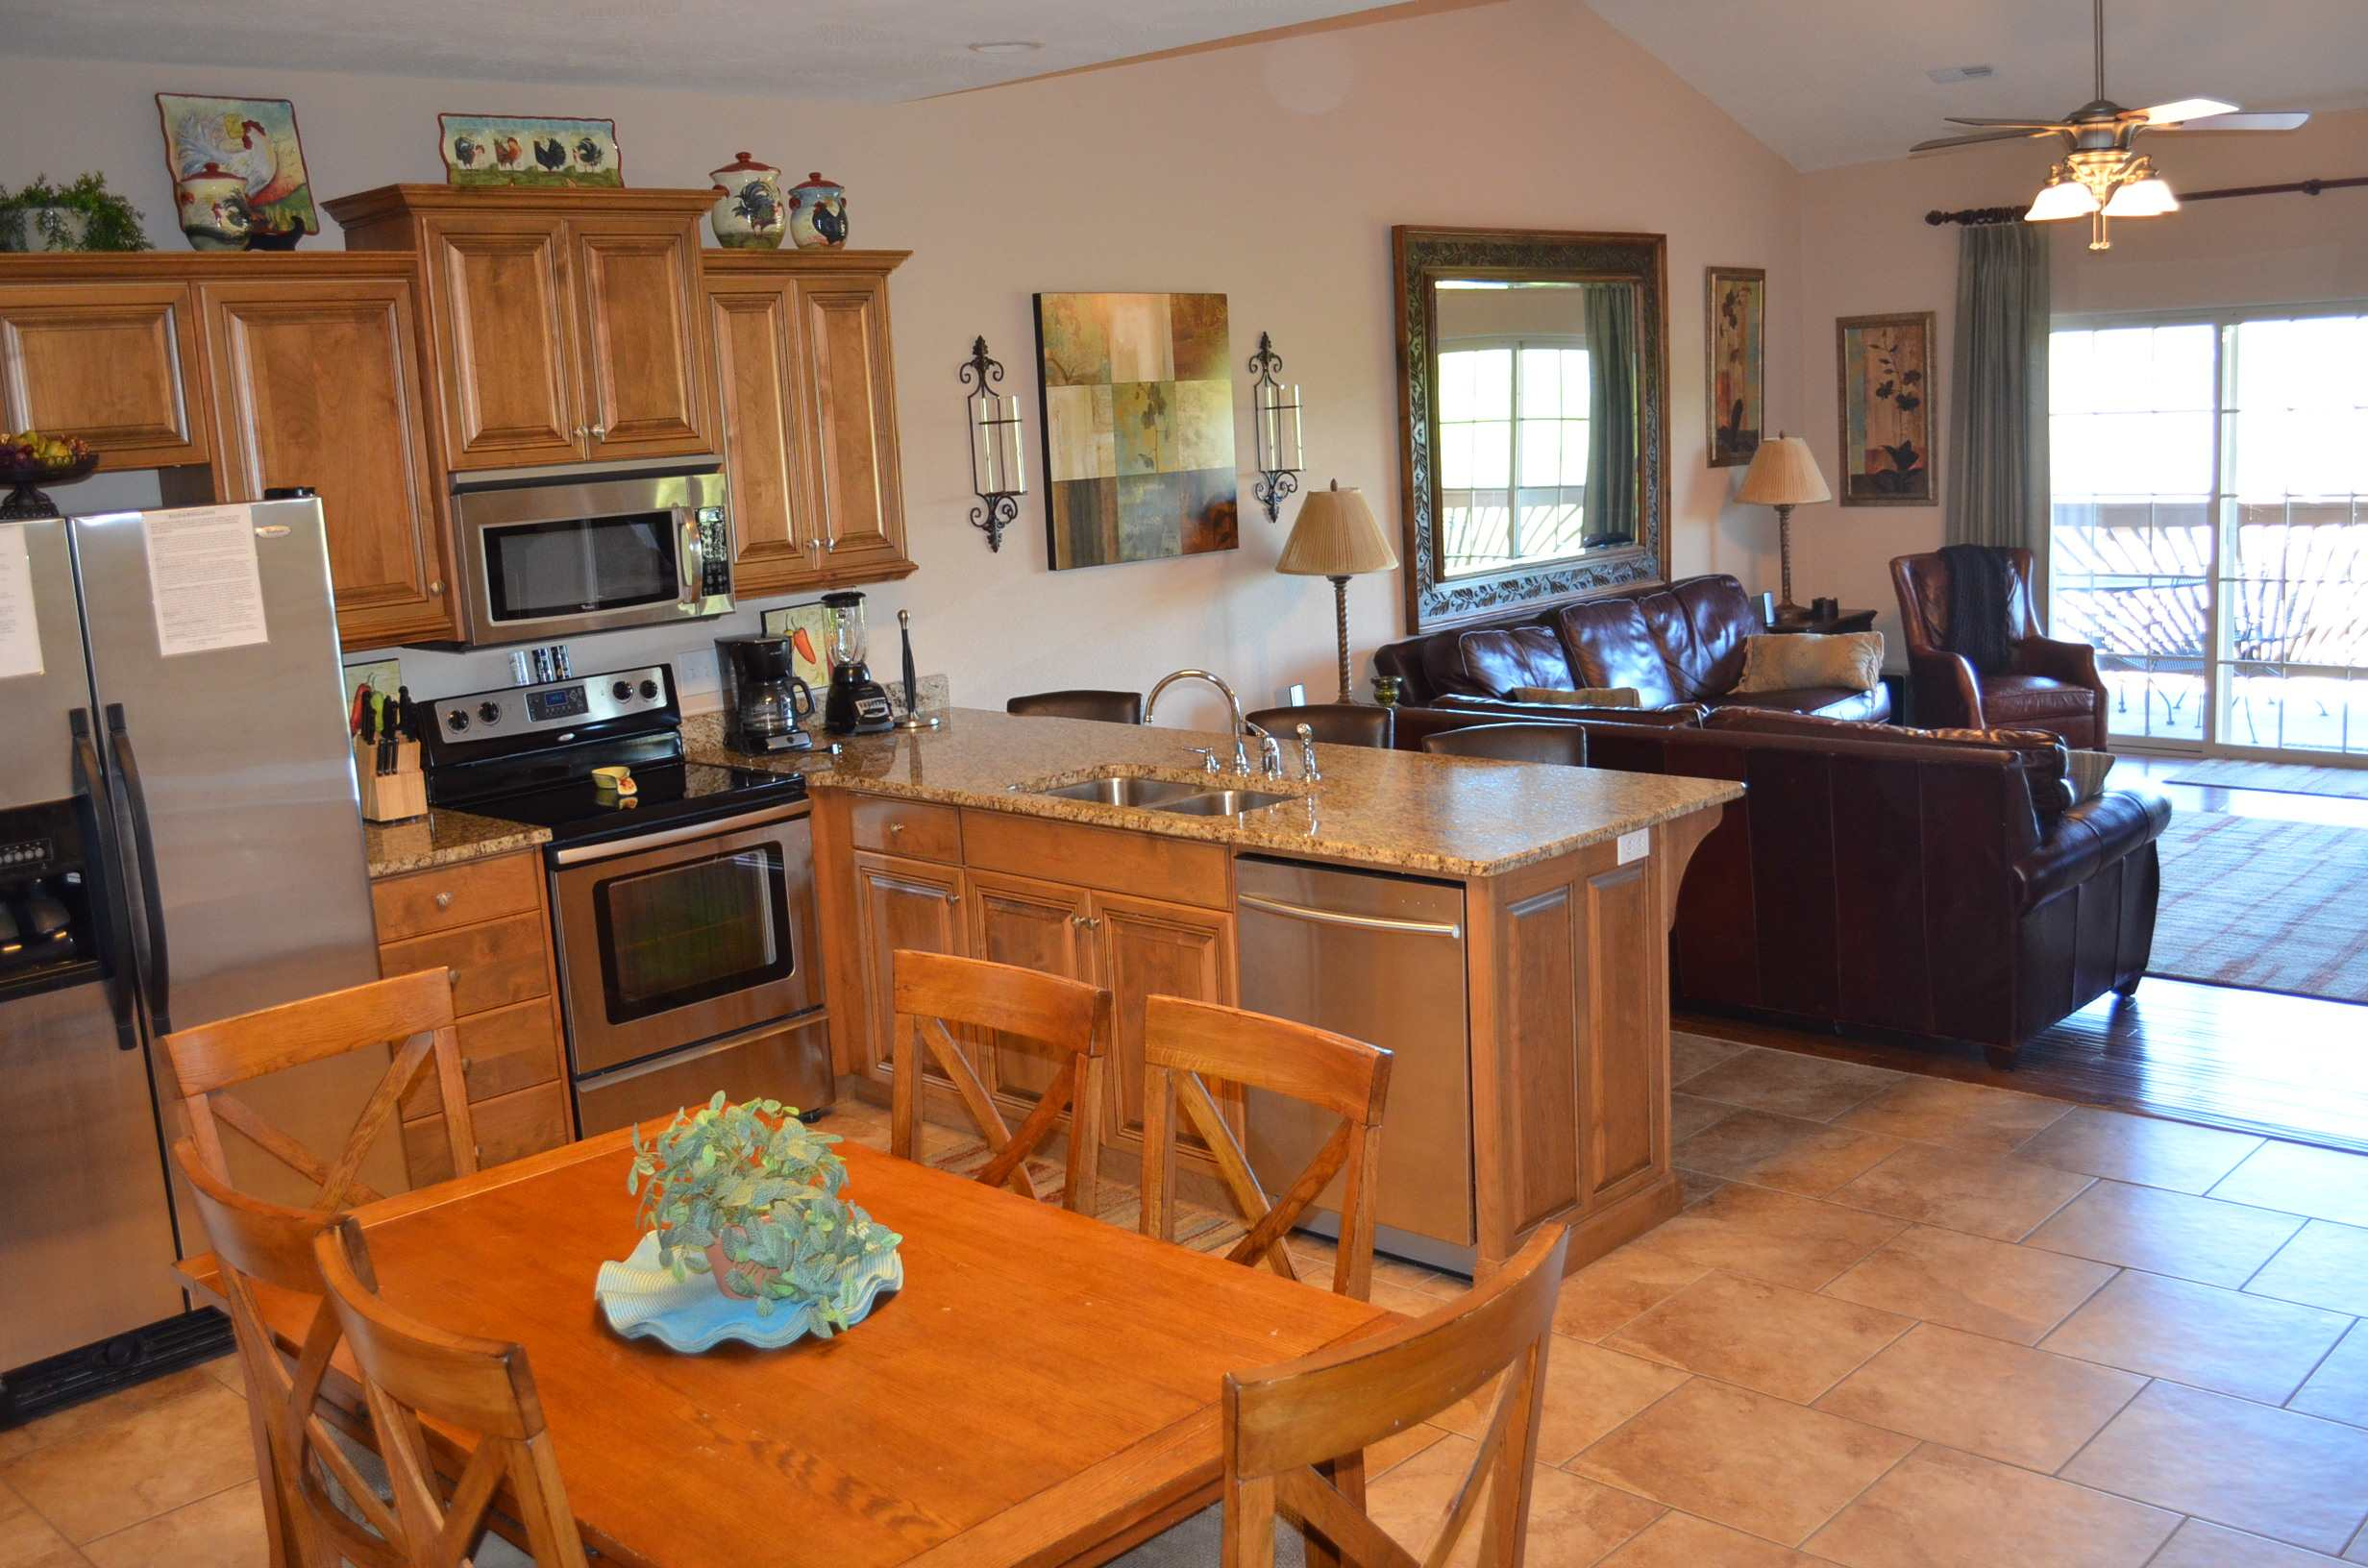 Large-and-spacious-kitchen-ideal-for-families-who-all-want-to-be-together-for-meals